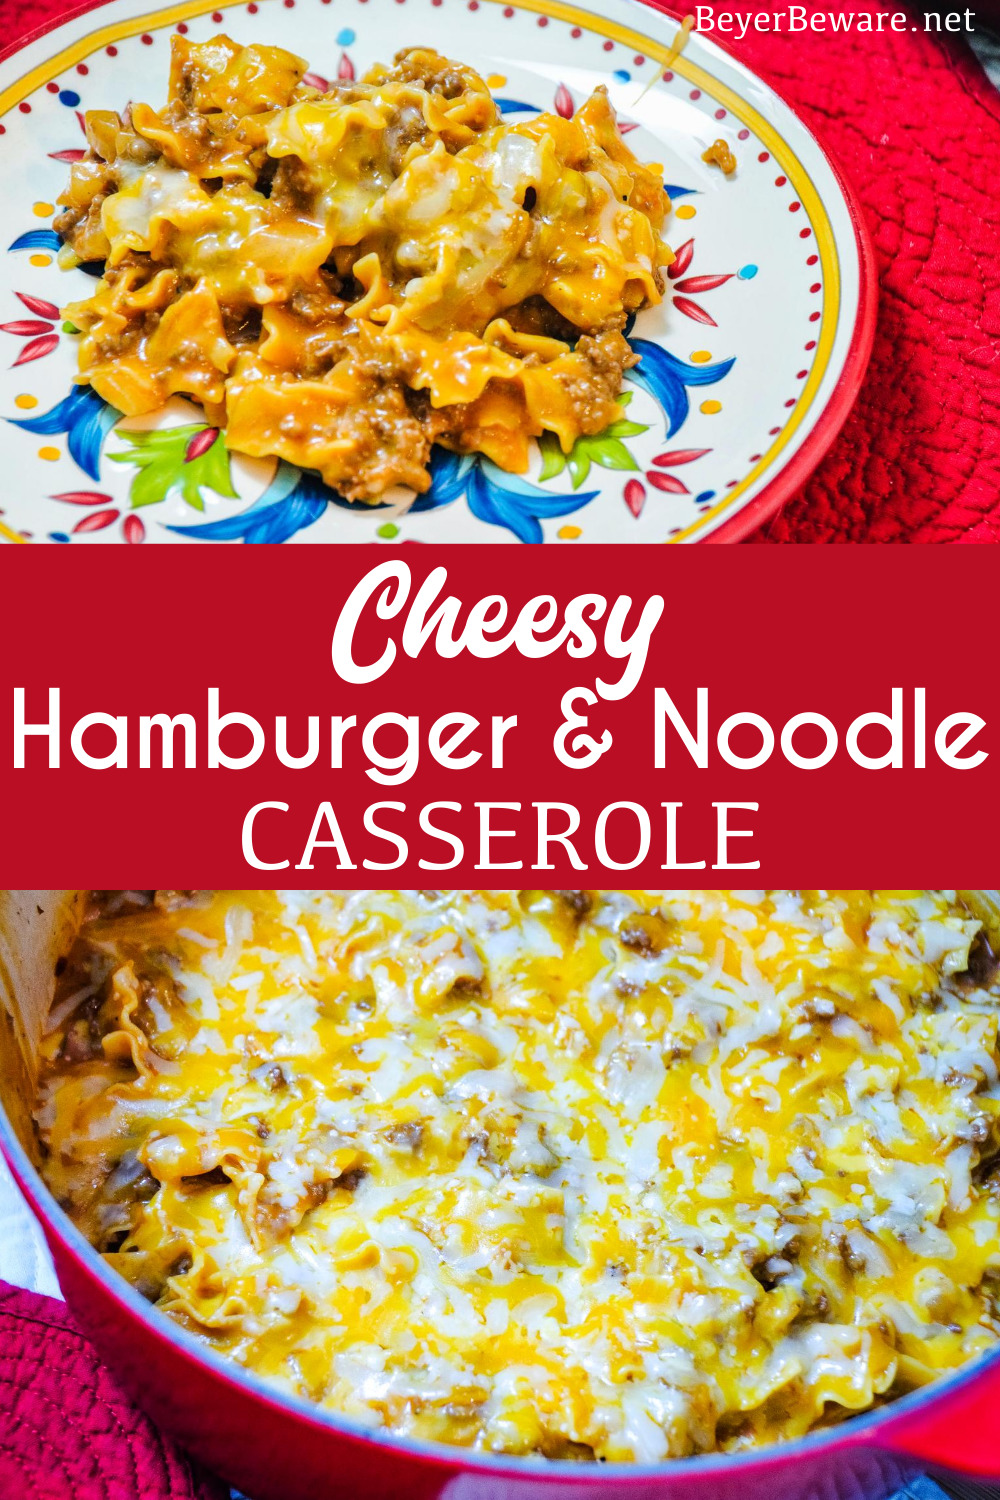 Cheesy hamburger and noodle casserole is an easy dinner recipe made with ground beef, noodles, tomato soup, and cheese for homemade hamburger helper kind of meal.